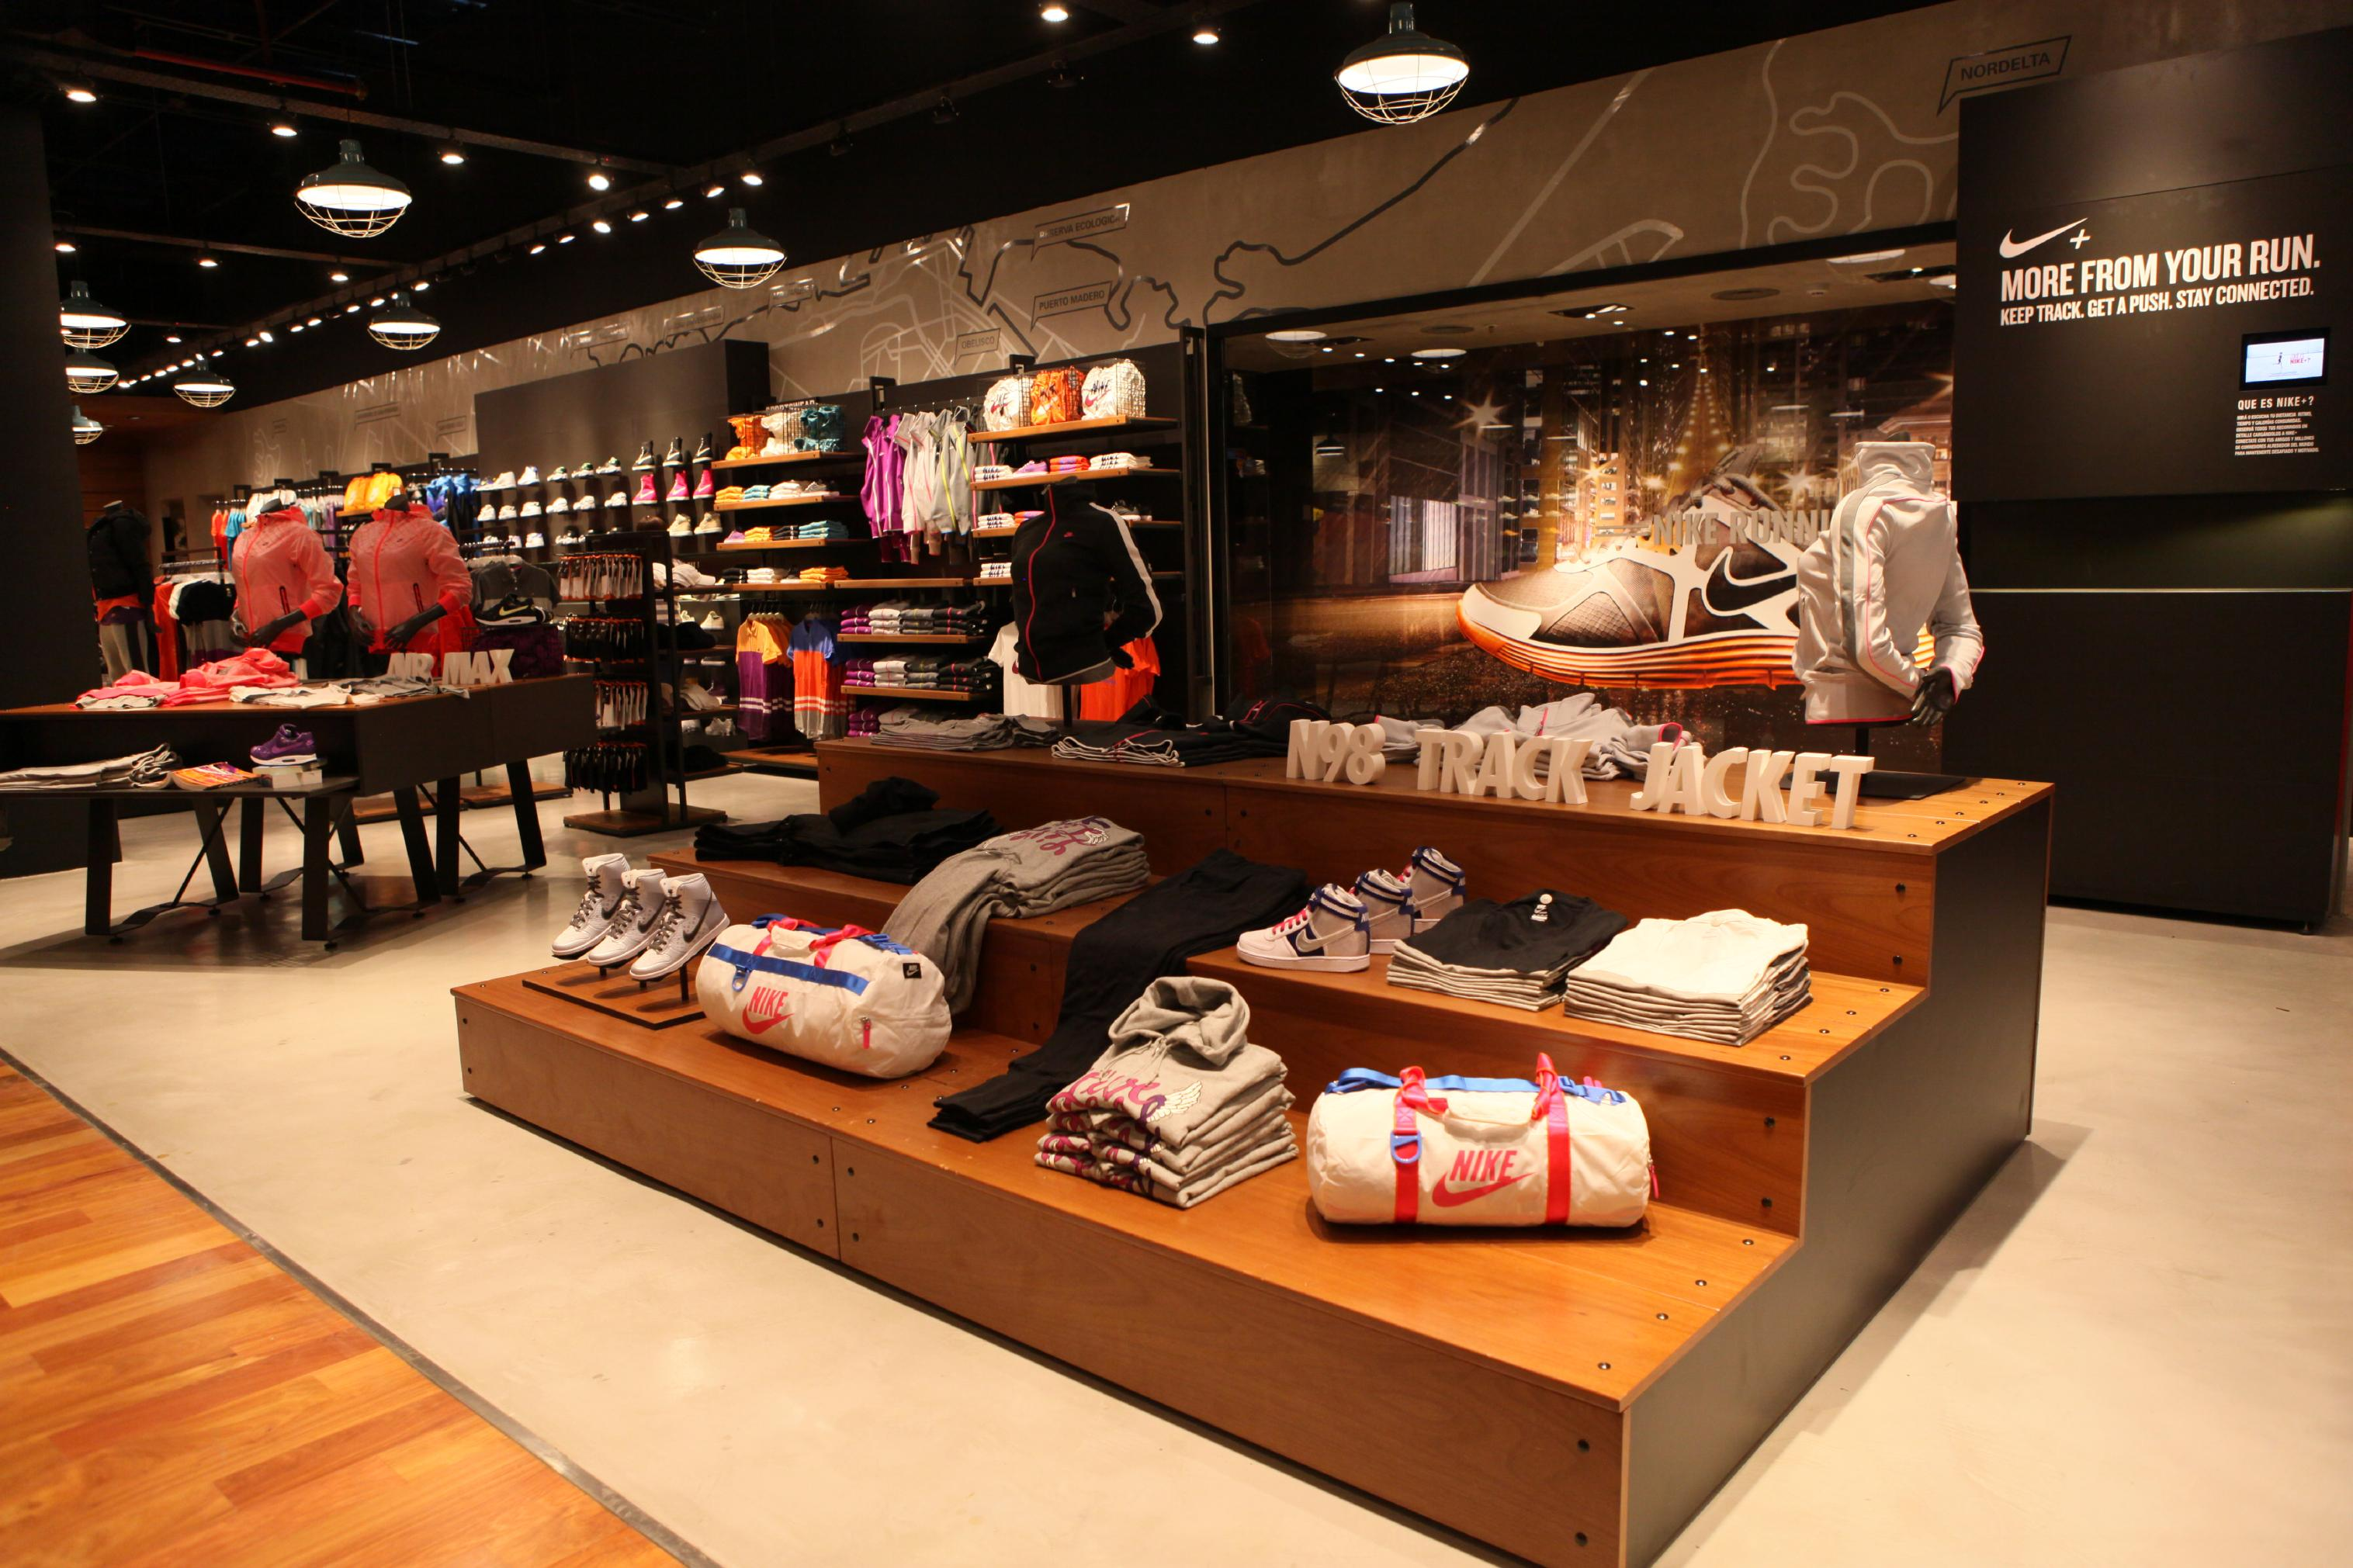 nike store in argentina earns gold leed certification nike news. Black Bedroom Furniture Sets. Home Design Ideas